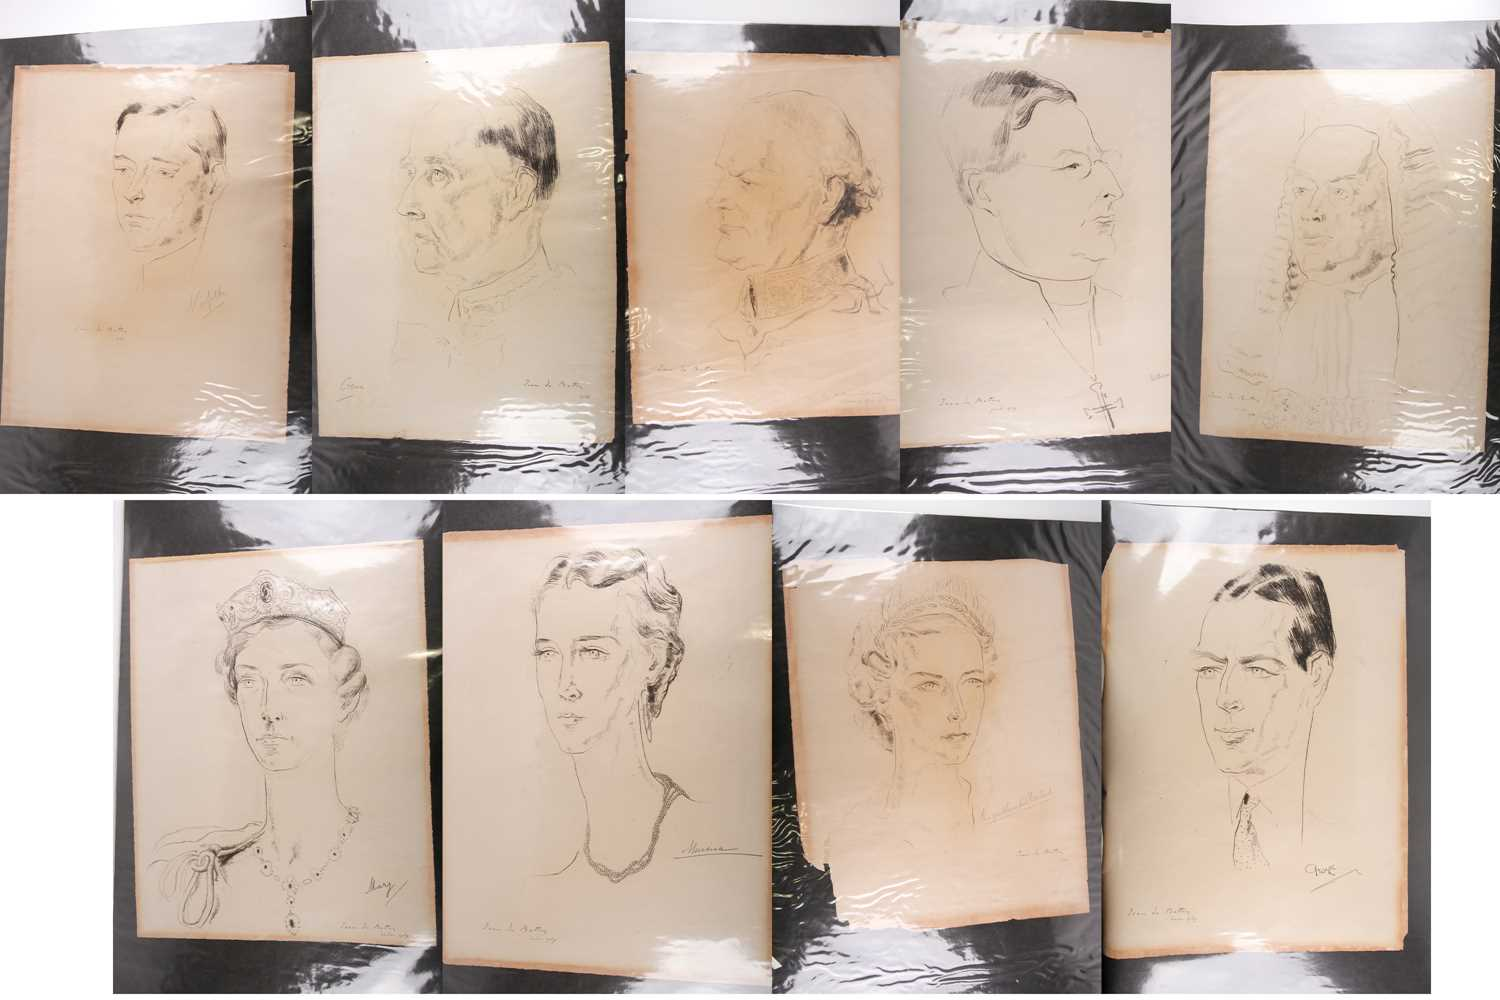 portrait sketches by Jean De Botton for the 1937 Coronation of HM King George VI and Queen Elizabeth